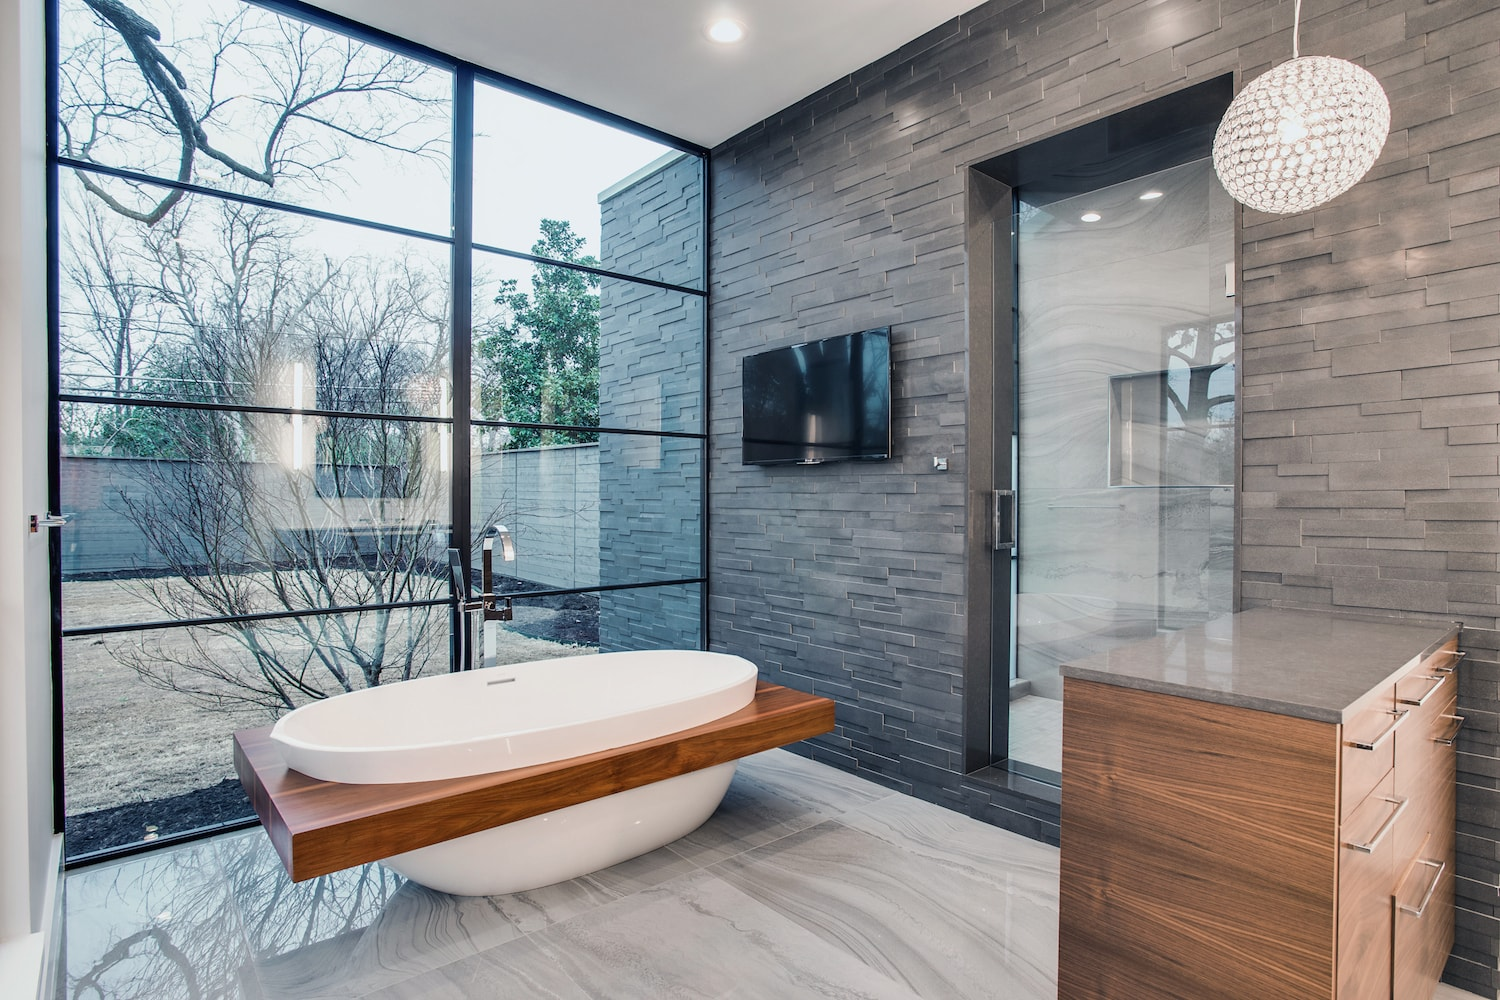 Modern luxury bathroom featuring complimentary light grey polished marble flooring and grey honed stone veneer wall.